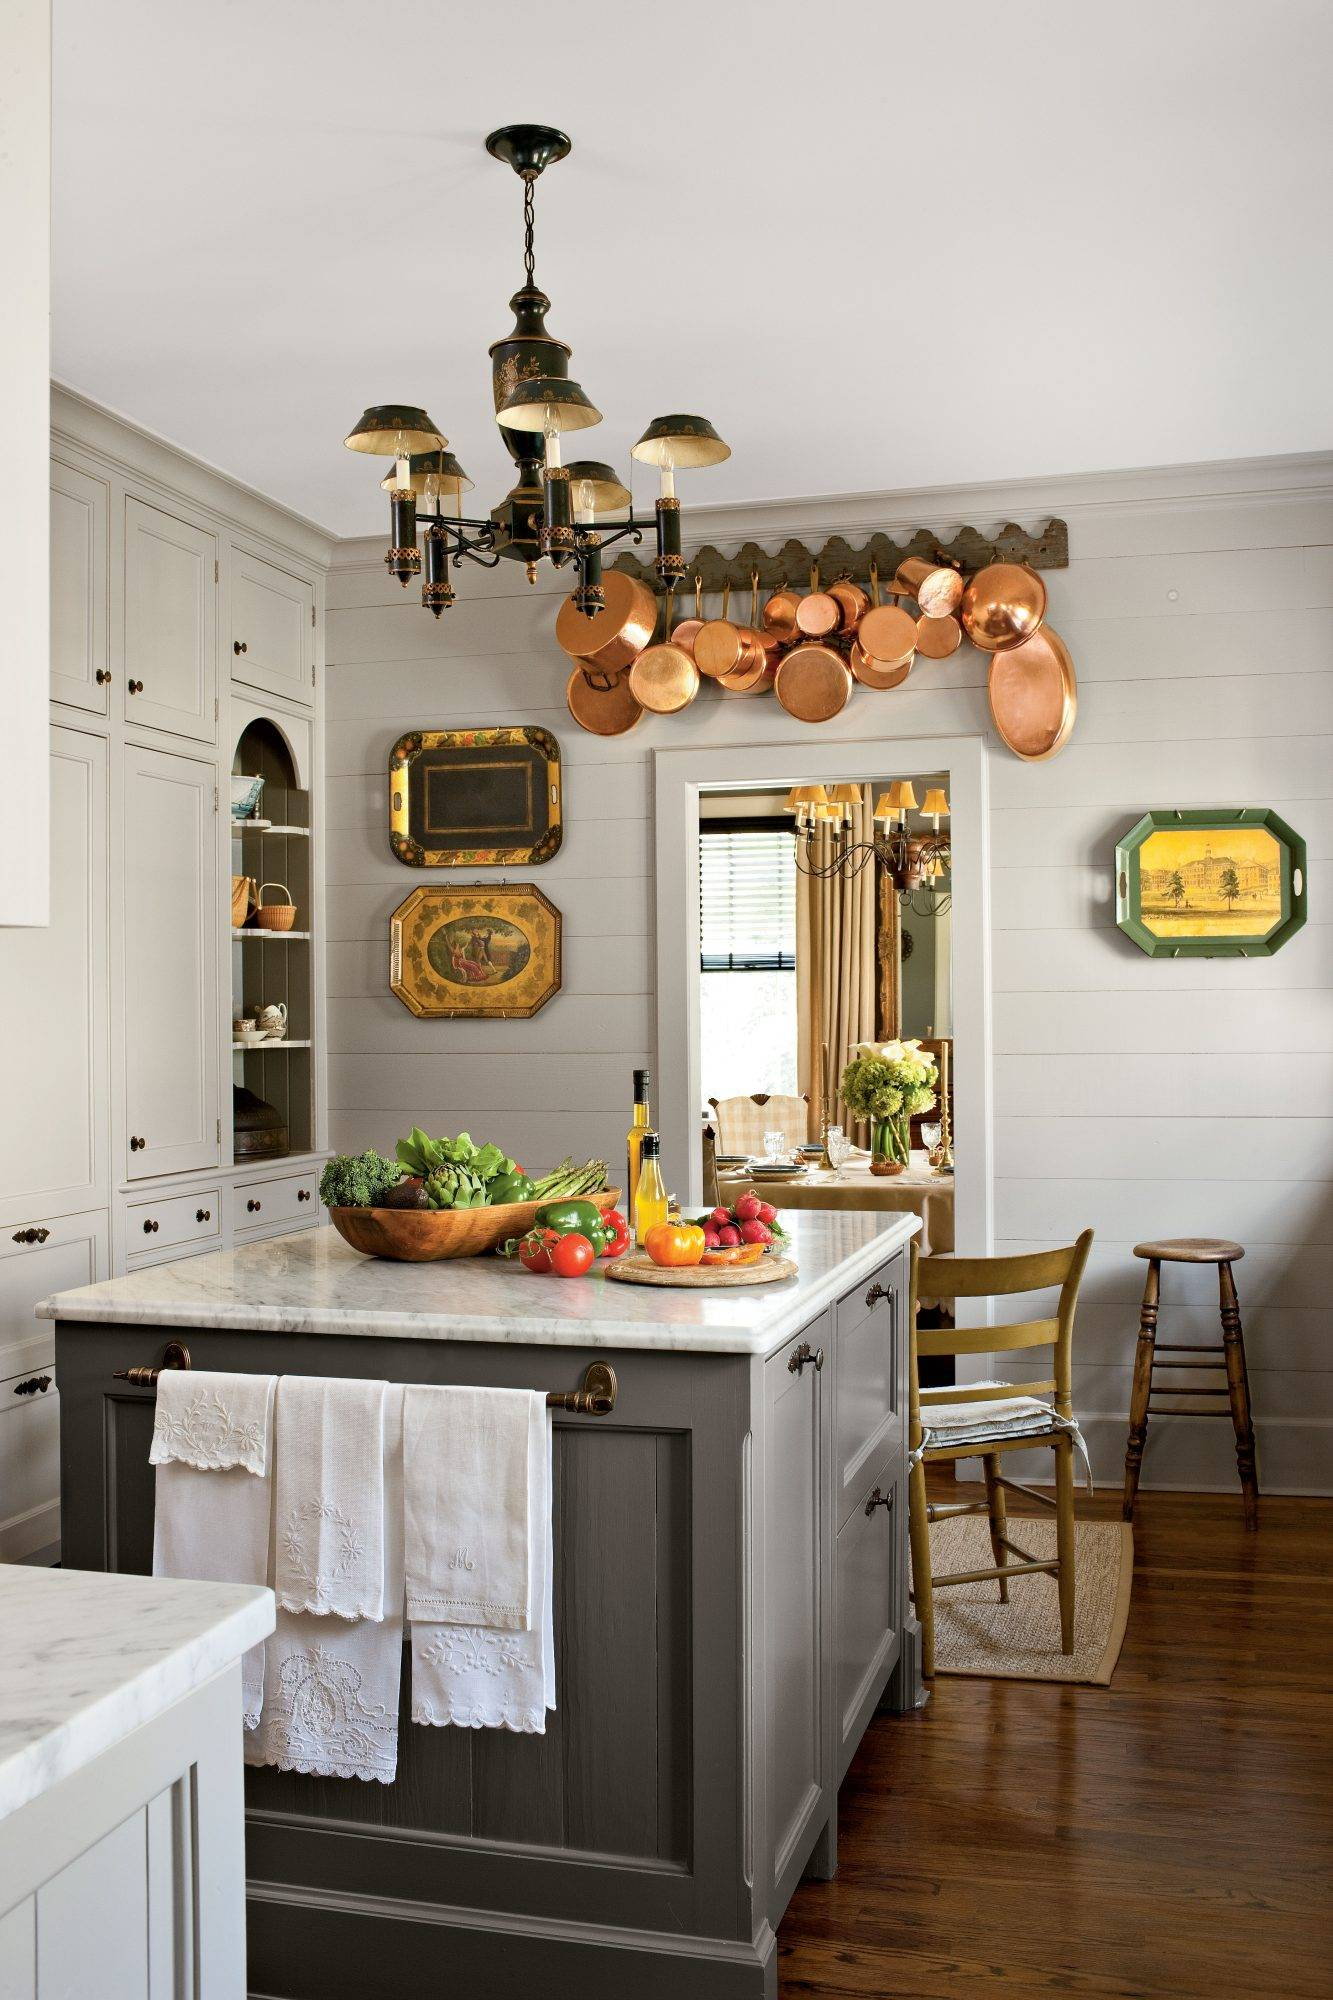 Vintage platters and cookware hanging on white wall